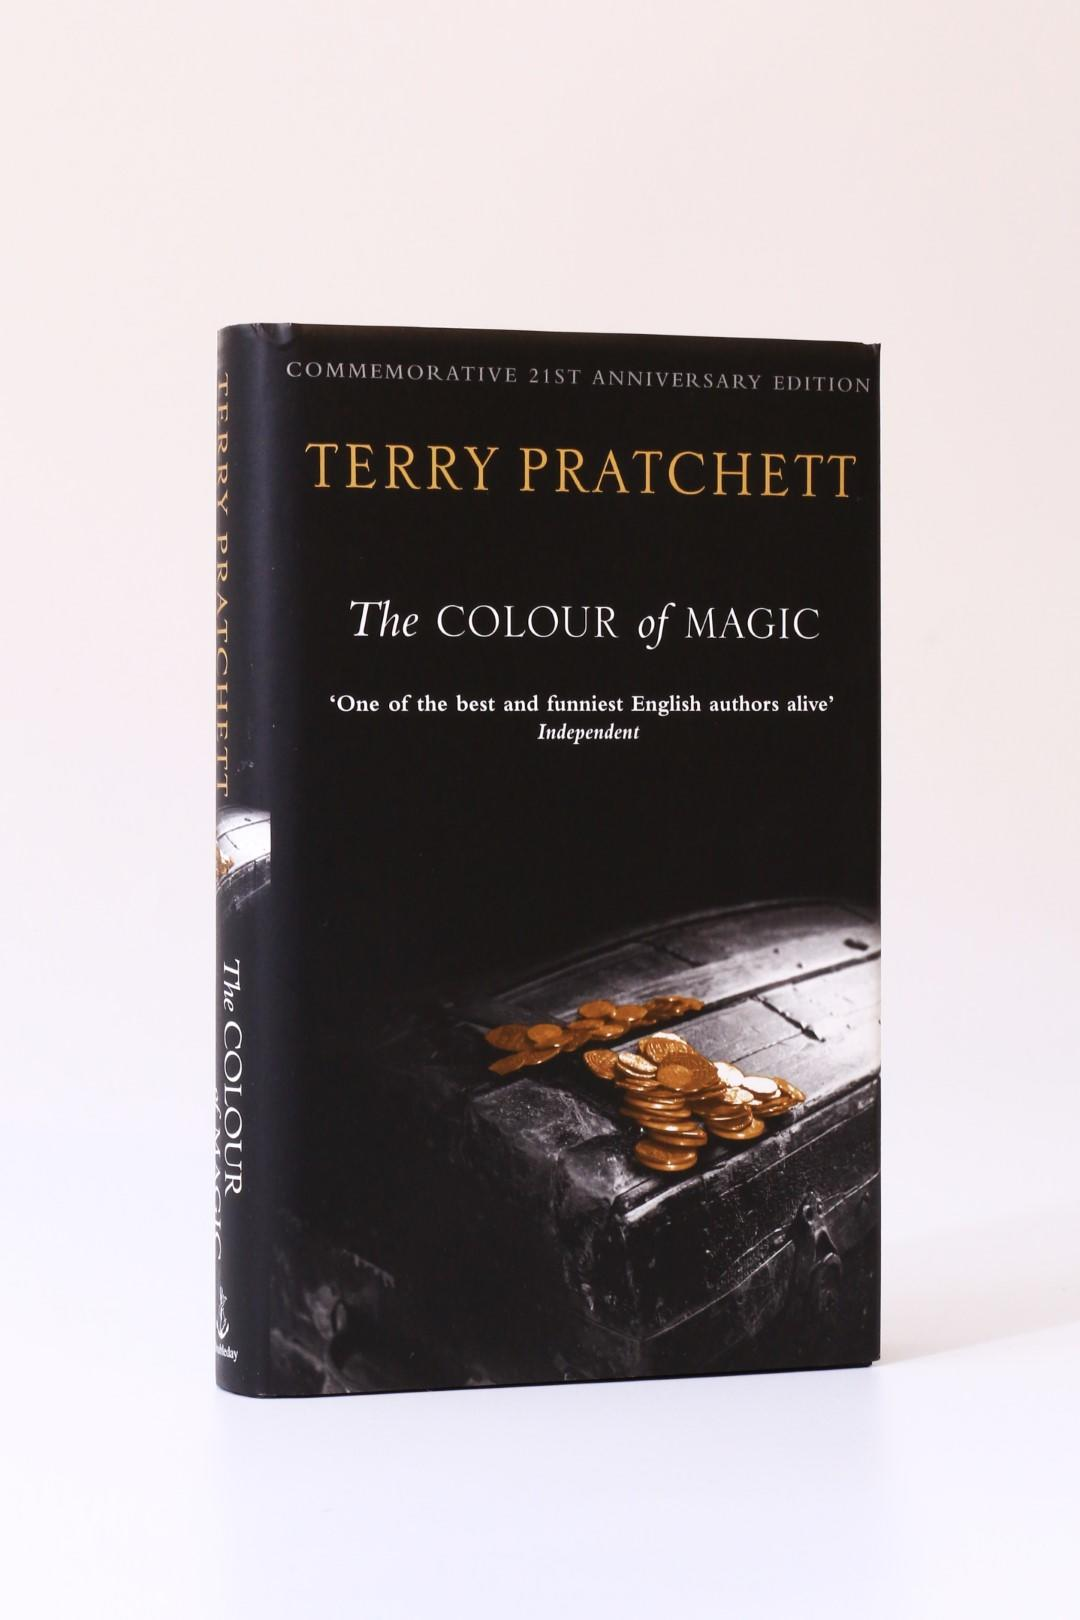 Terry Pratchett - The Colour of Magic: Commemorative 21st Anniversary Edition - Doubleday, 2004, First Thus. Signed